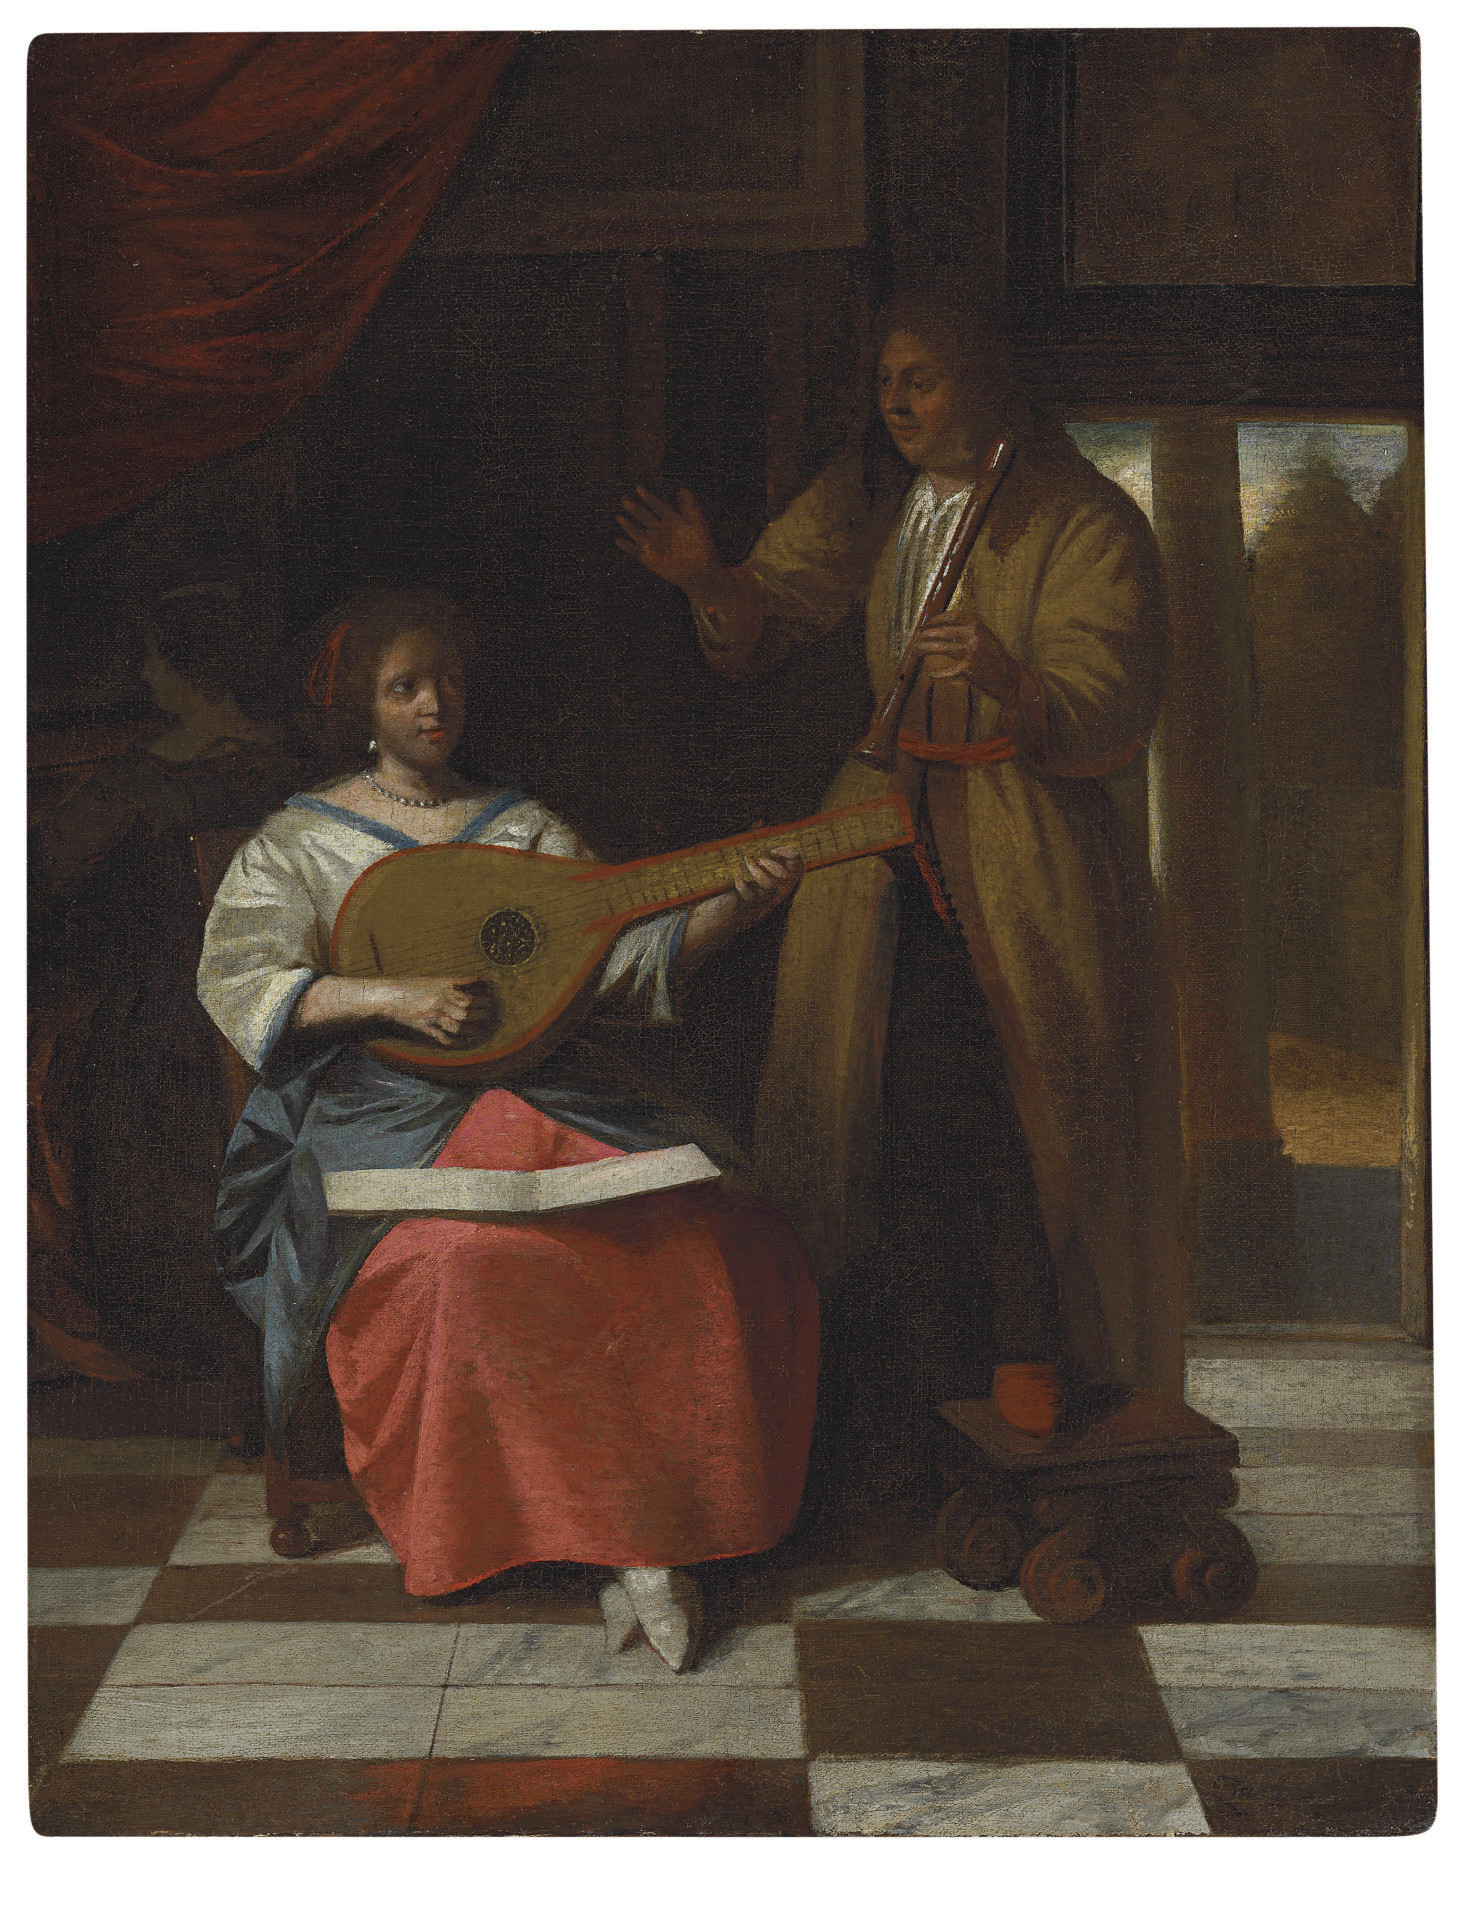 A Musical Company in an interior